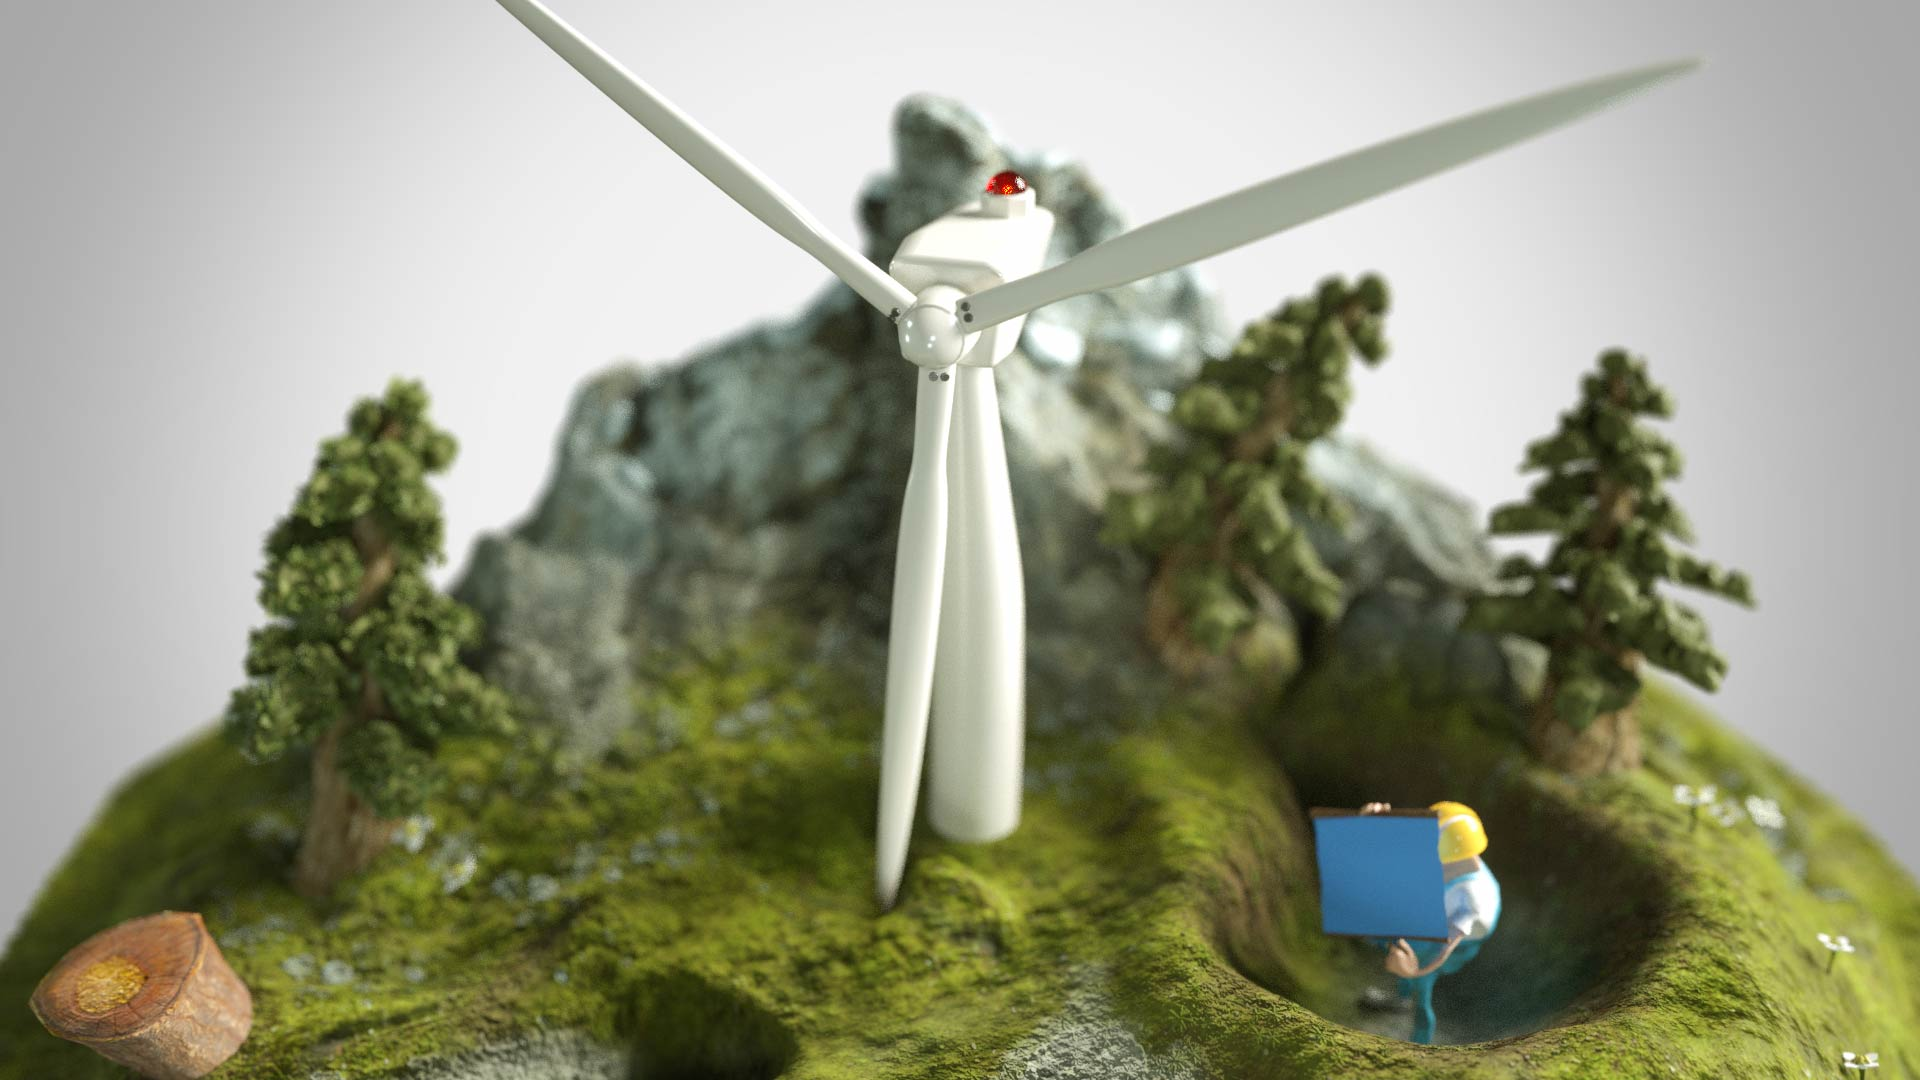 Zoom_shot_01_windturbine.jpg